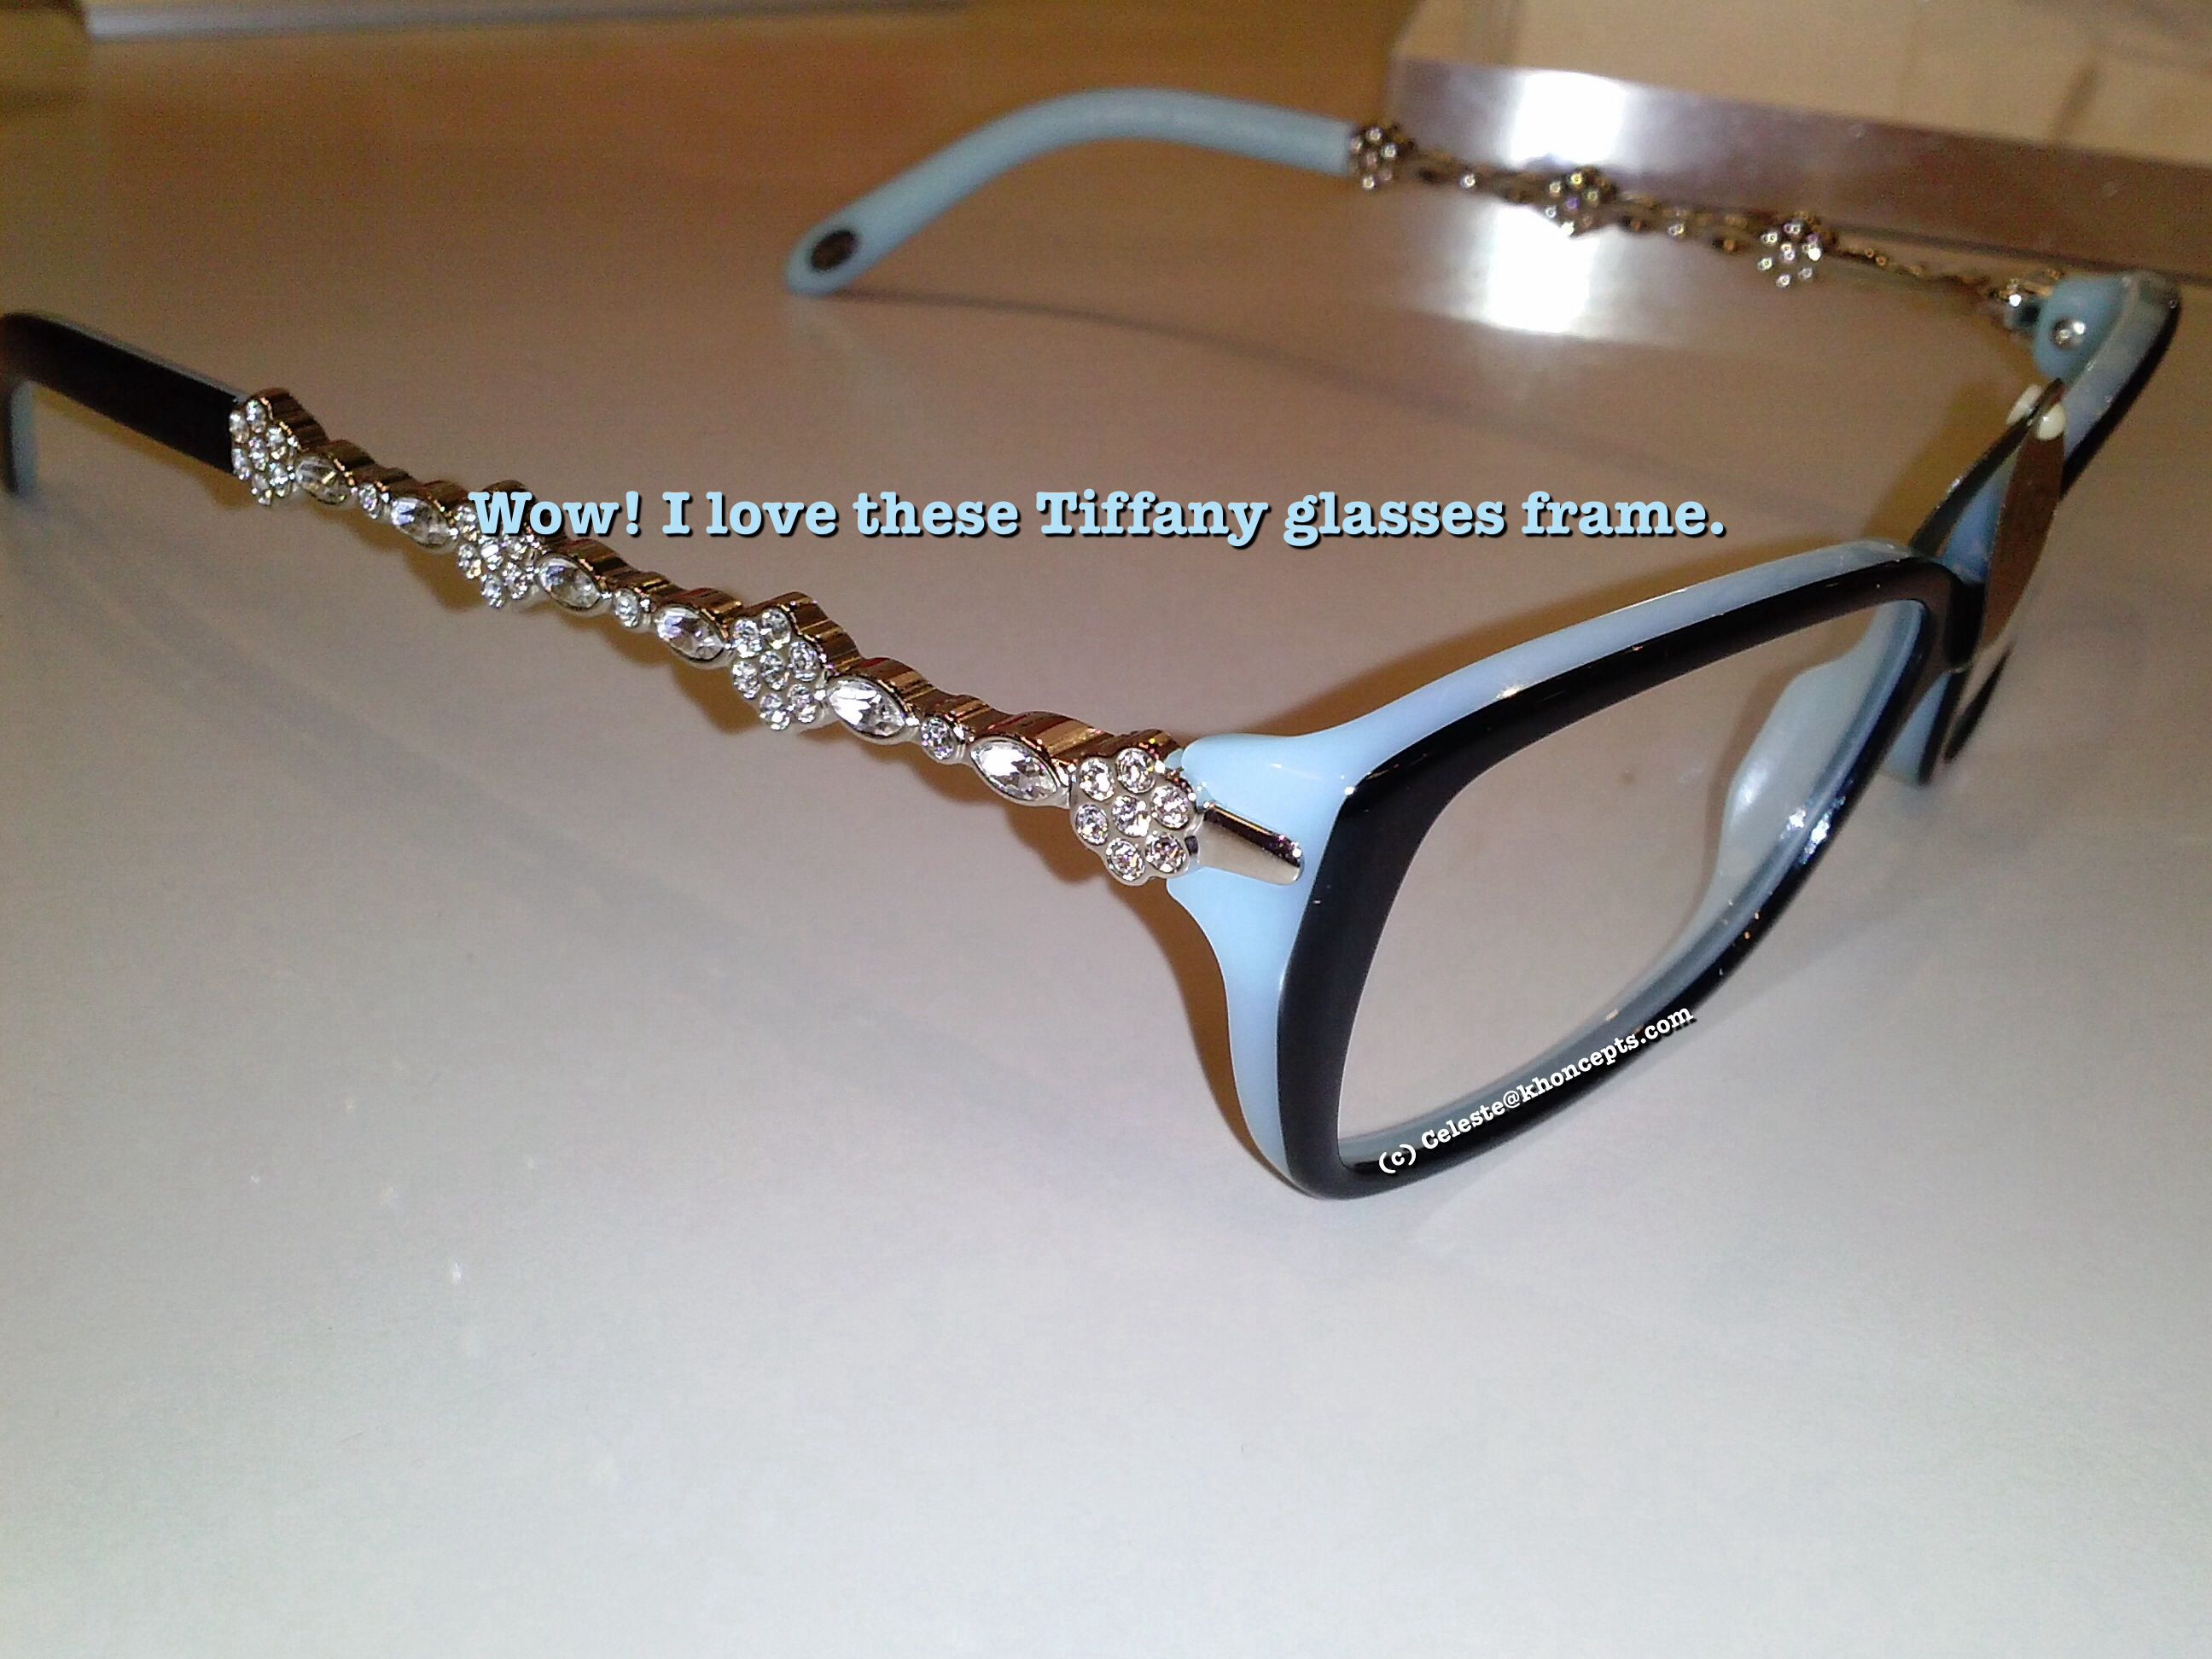 Love these bling #Tiffany glasses frames spotted at my eye ...